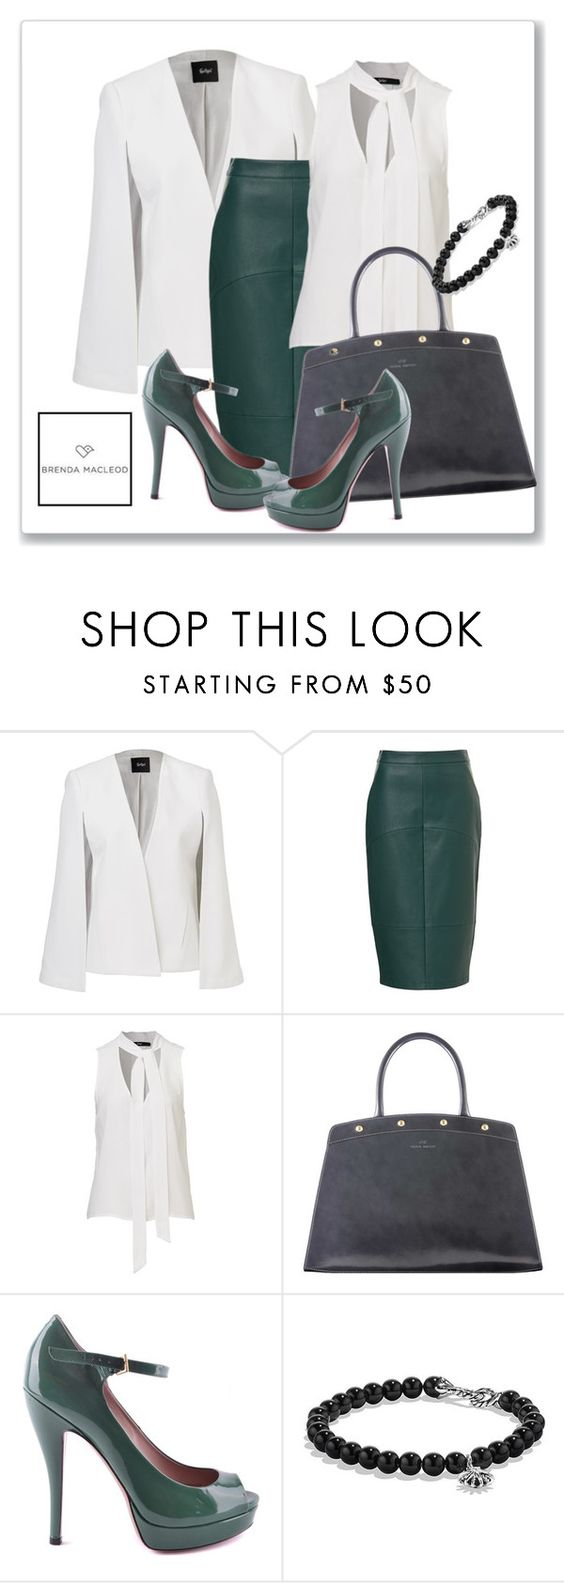 """career woman"" by brendamacleod ❤ liked on Polyvore featuring Mode, Gucci, David Yurman, women's clothing, women, female, woman, misses und juniors"